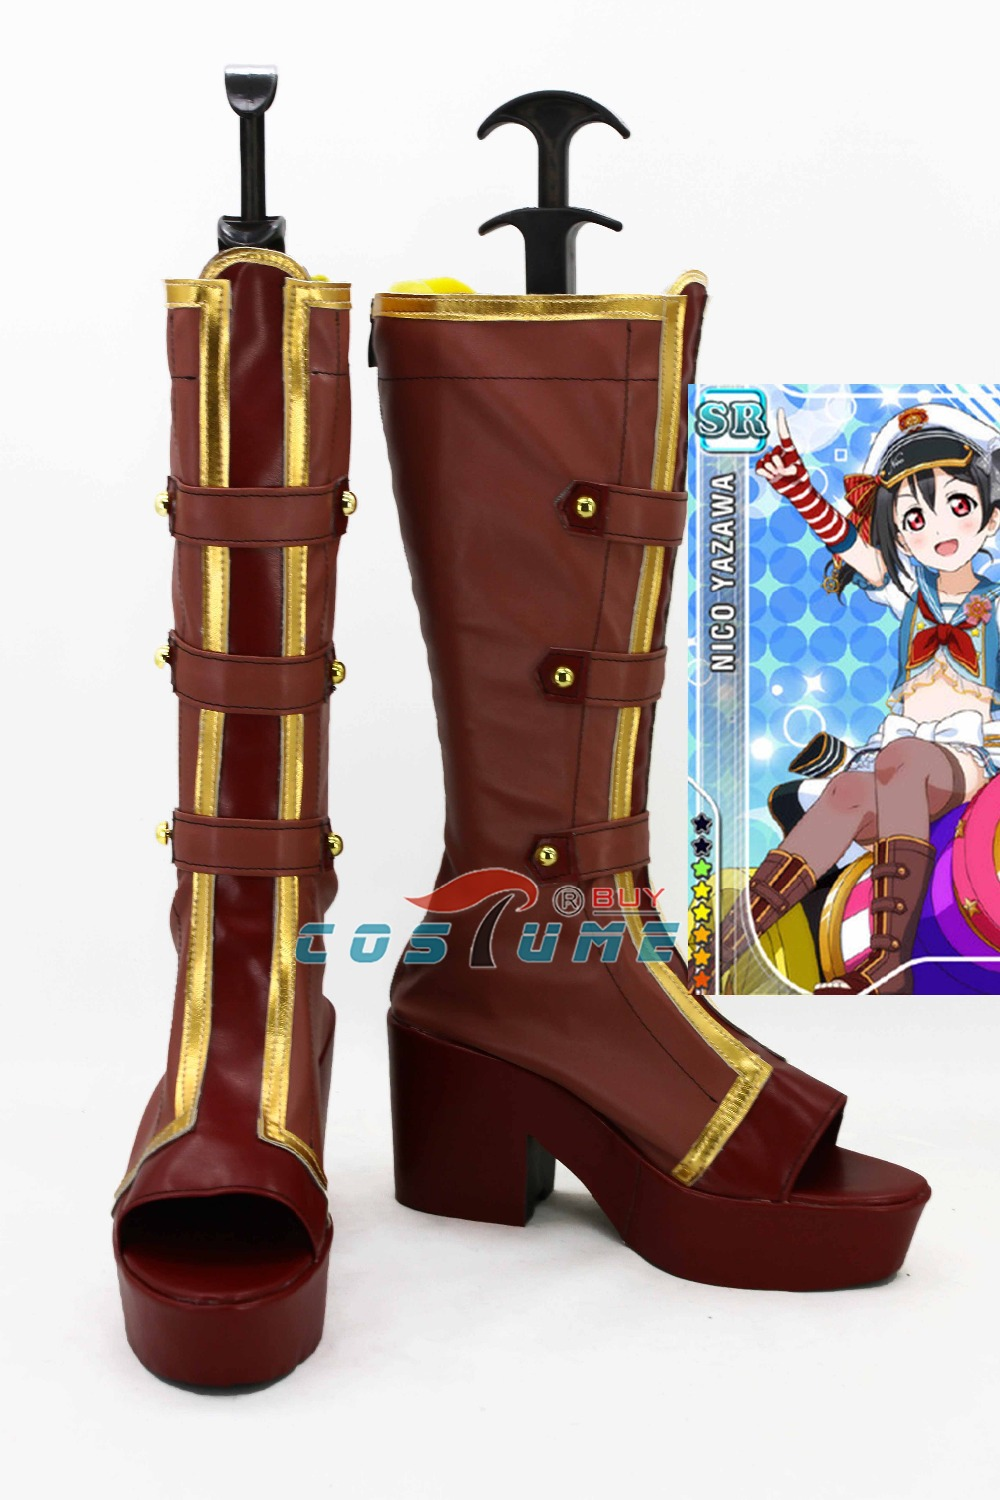 LoveLive! Love Live Nozomi Tojo Navy Halloween Sailor Cosplay Boots Costume Shoes For Women